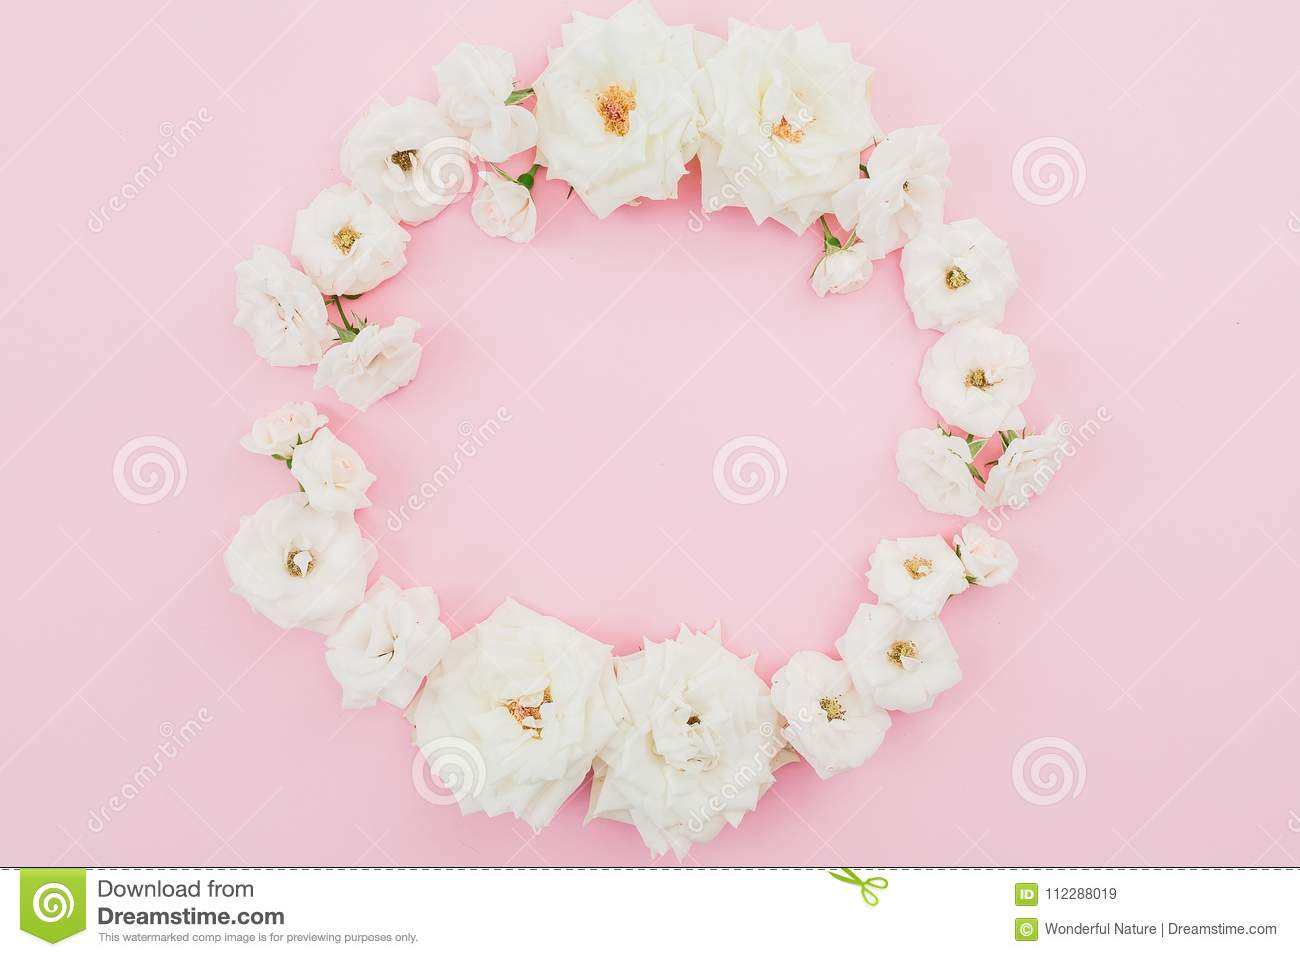 Floral round frame made of white roses on pink background. Flat lay, top view. Pastel background.